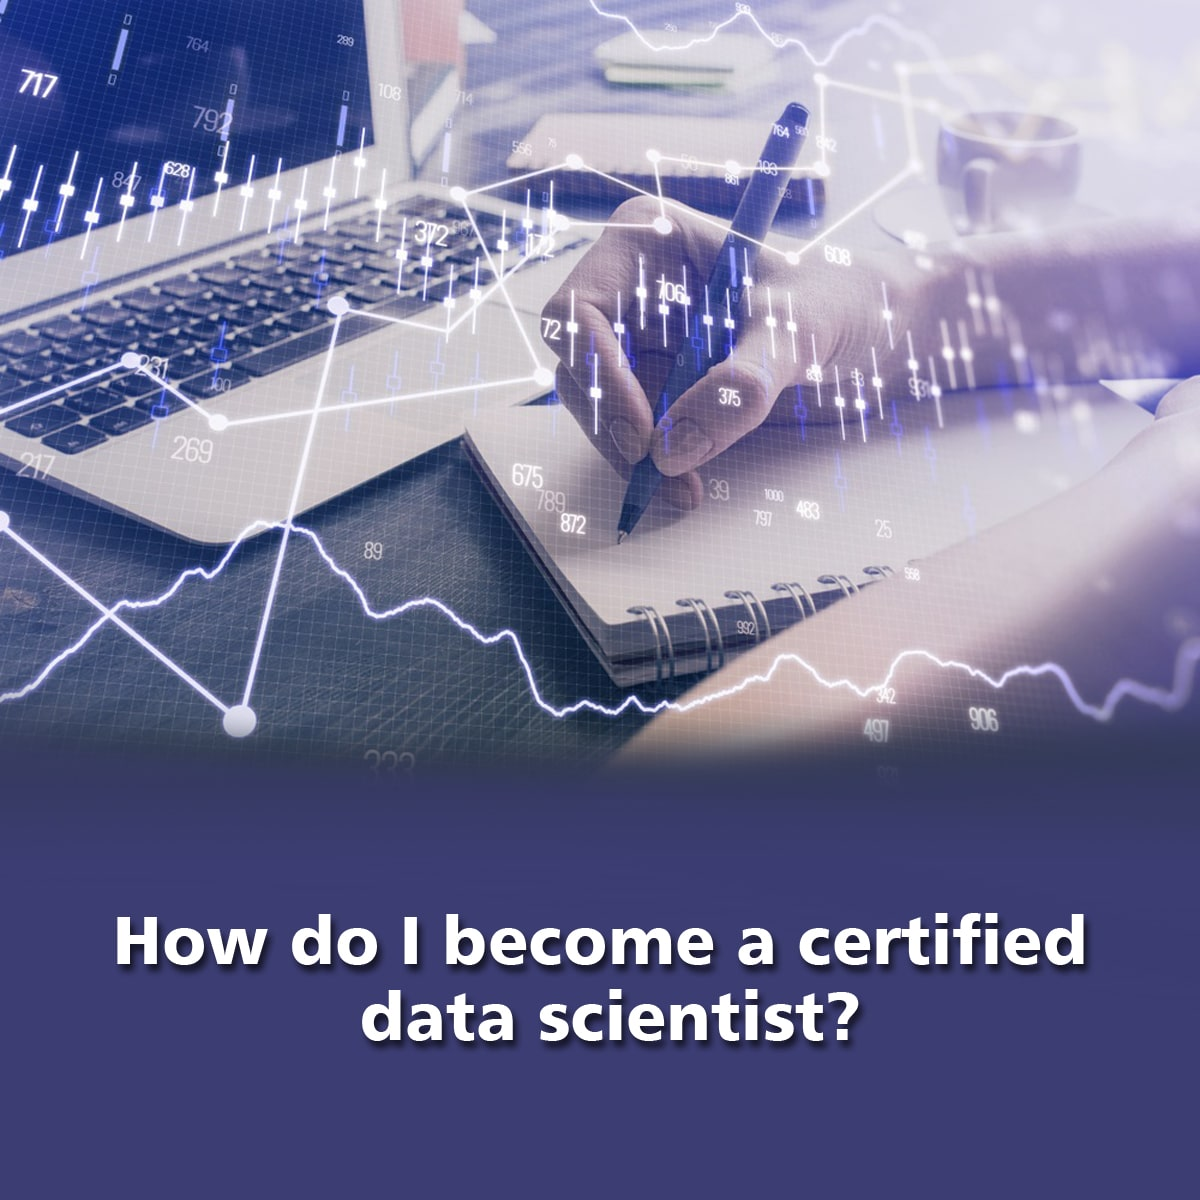 How do I become a certified data scientist?